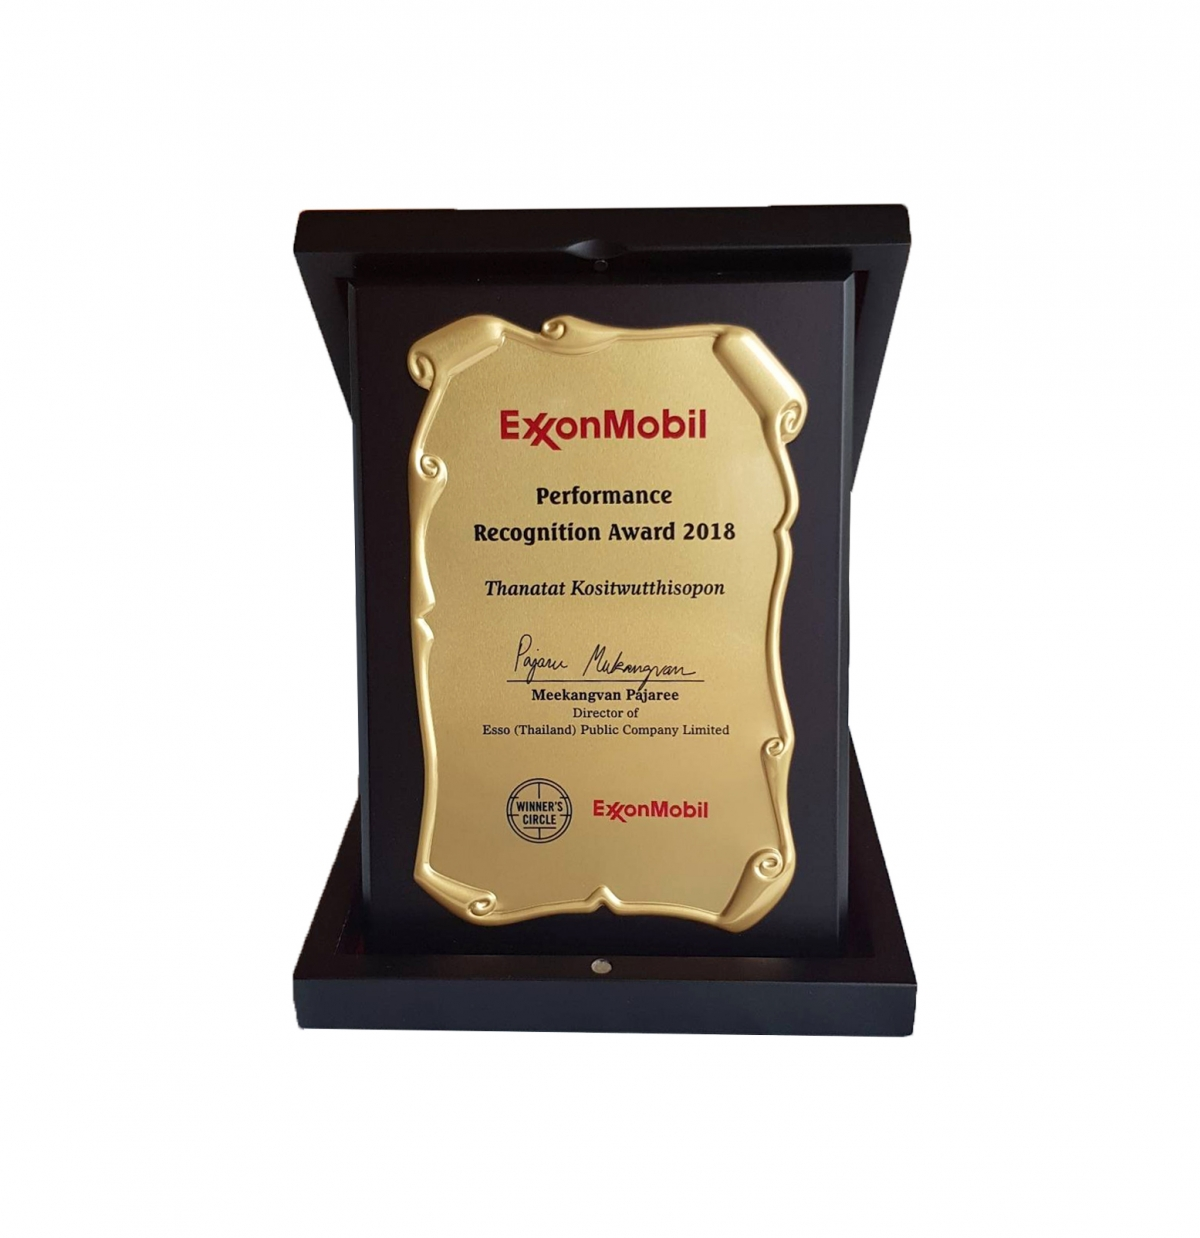 ExxonMobil Performance Recognition Award 2018